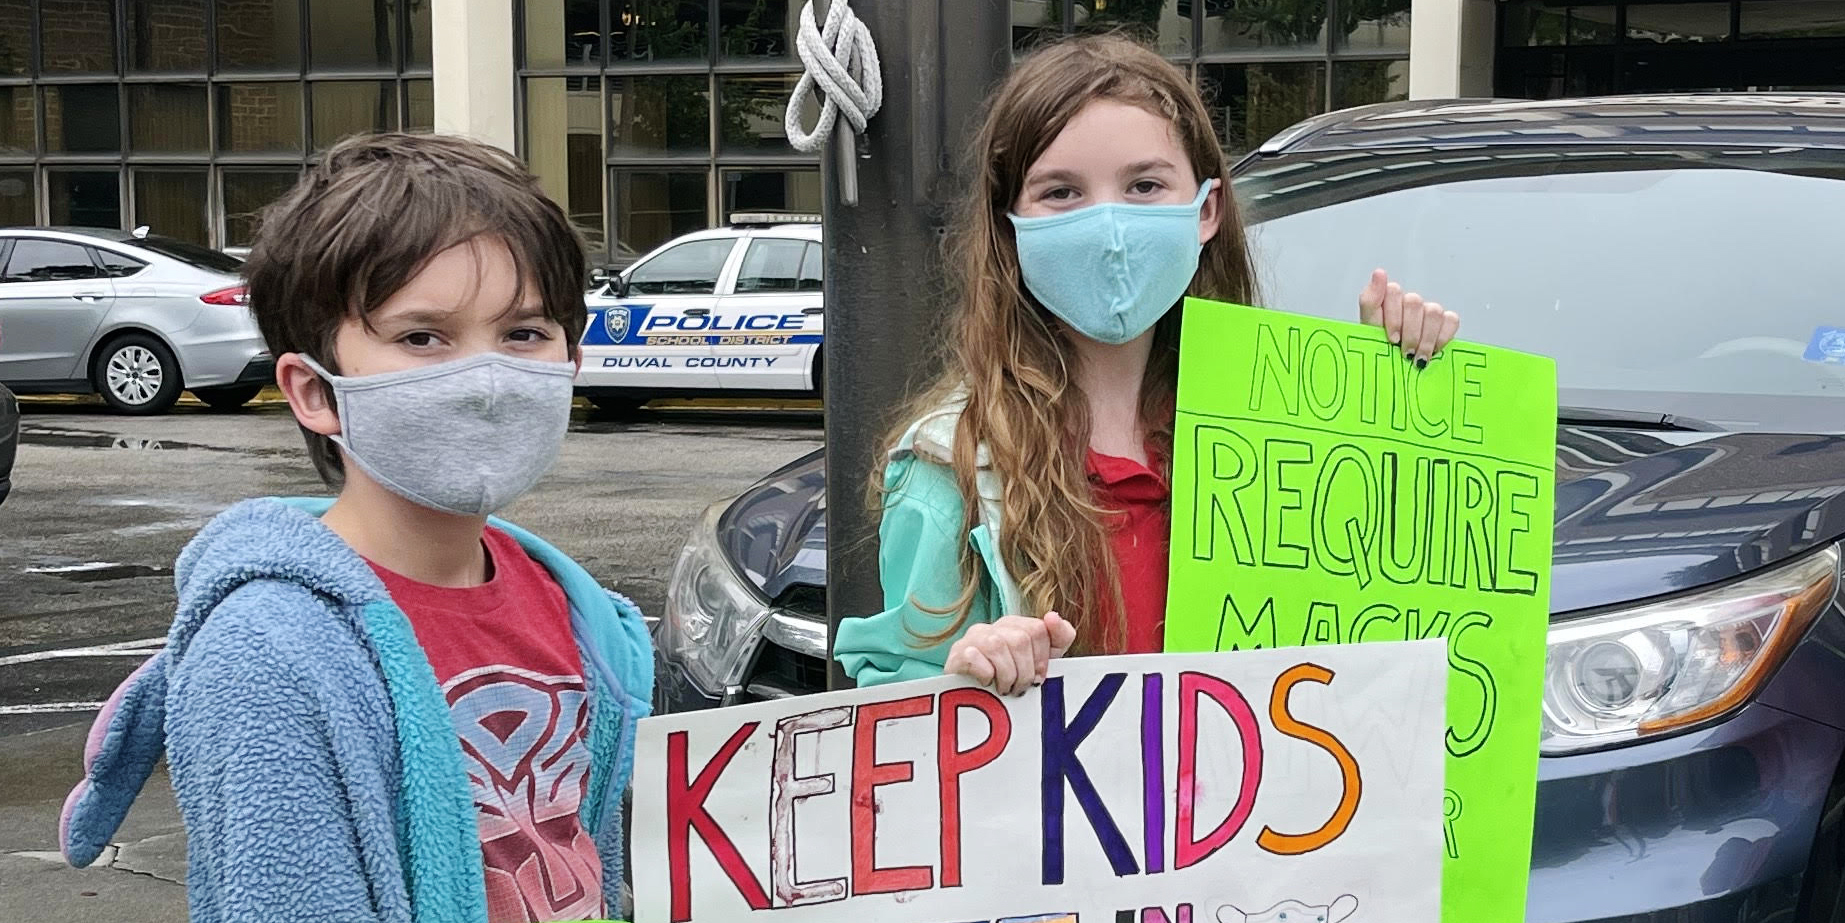 Florida 12-year-old advocates for mask mandates in schools